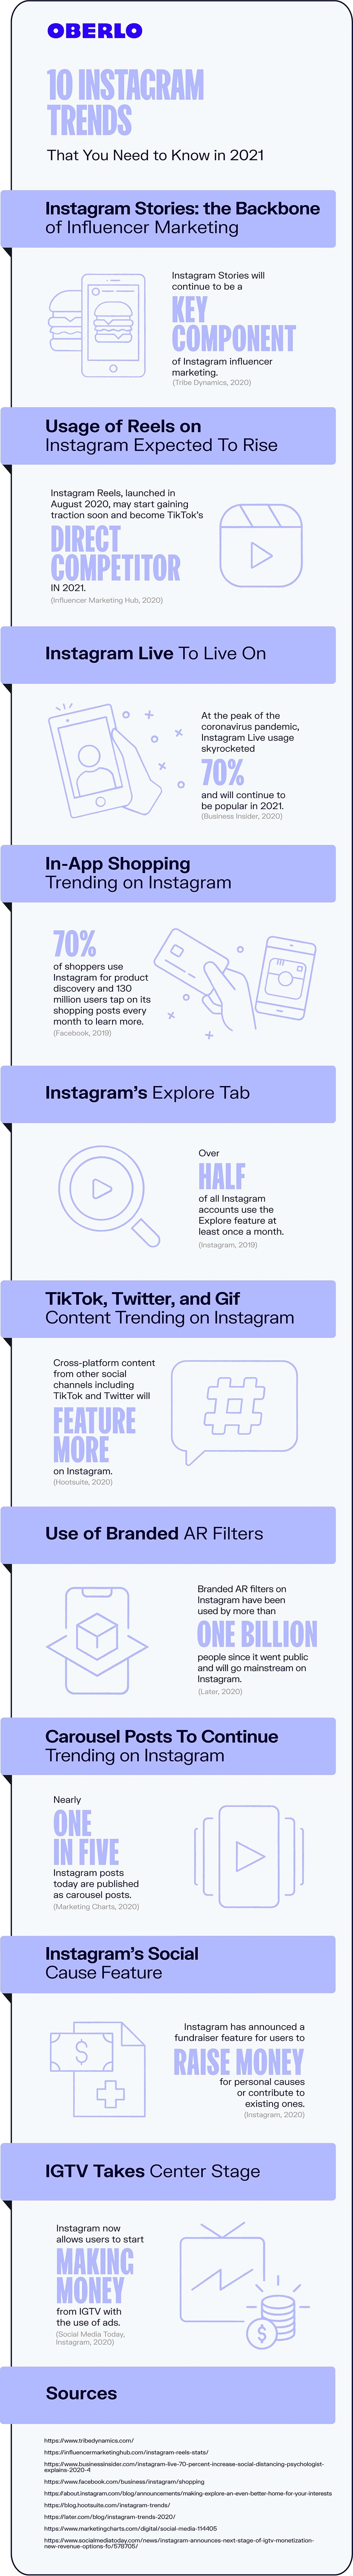 Instagram trends for 2021